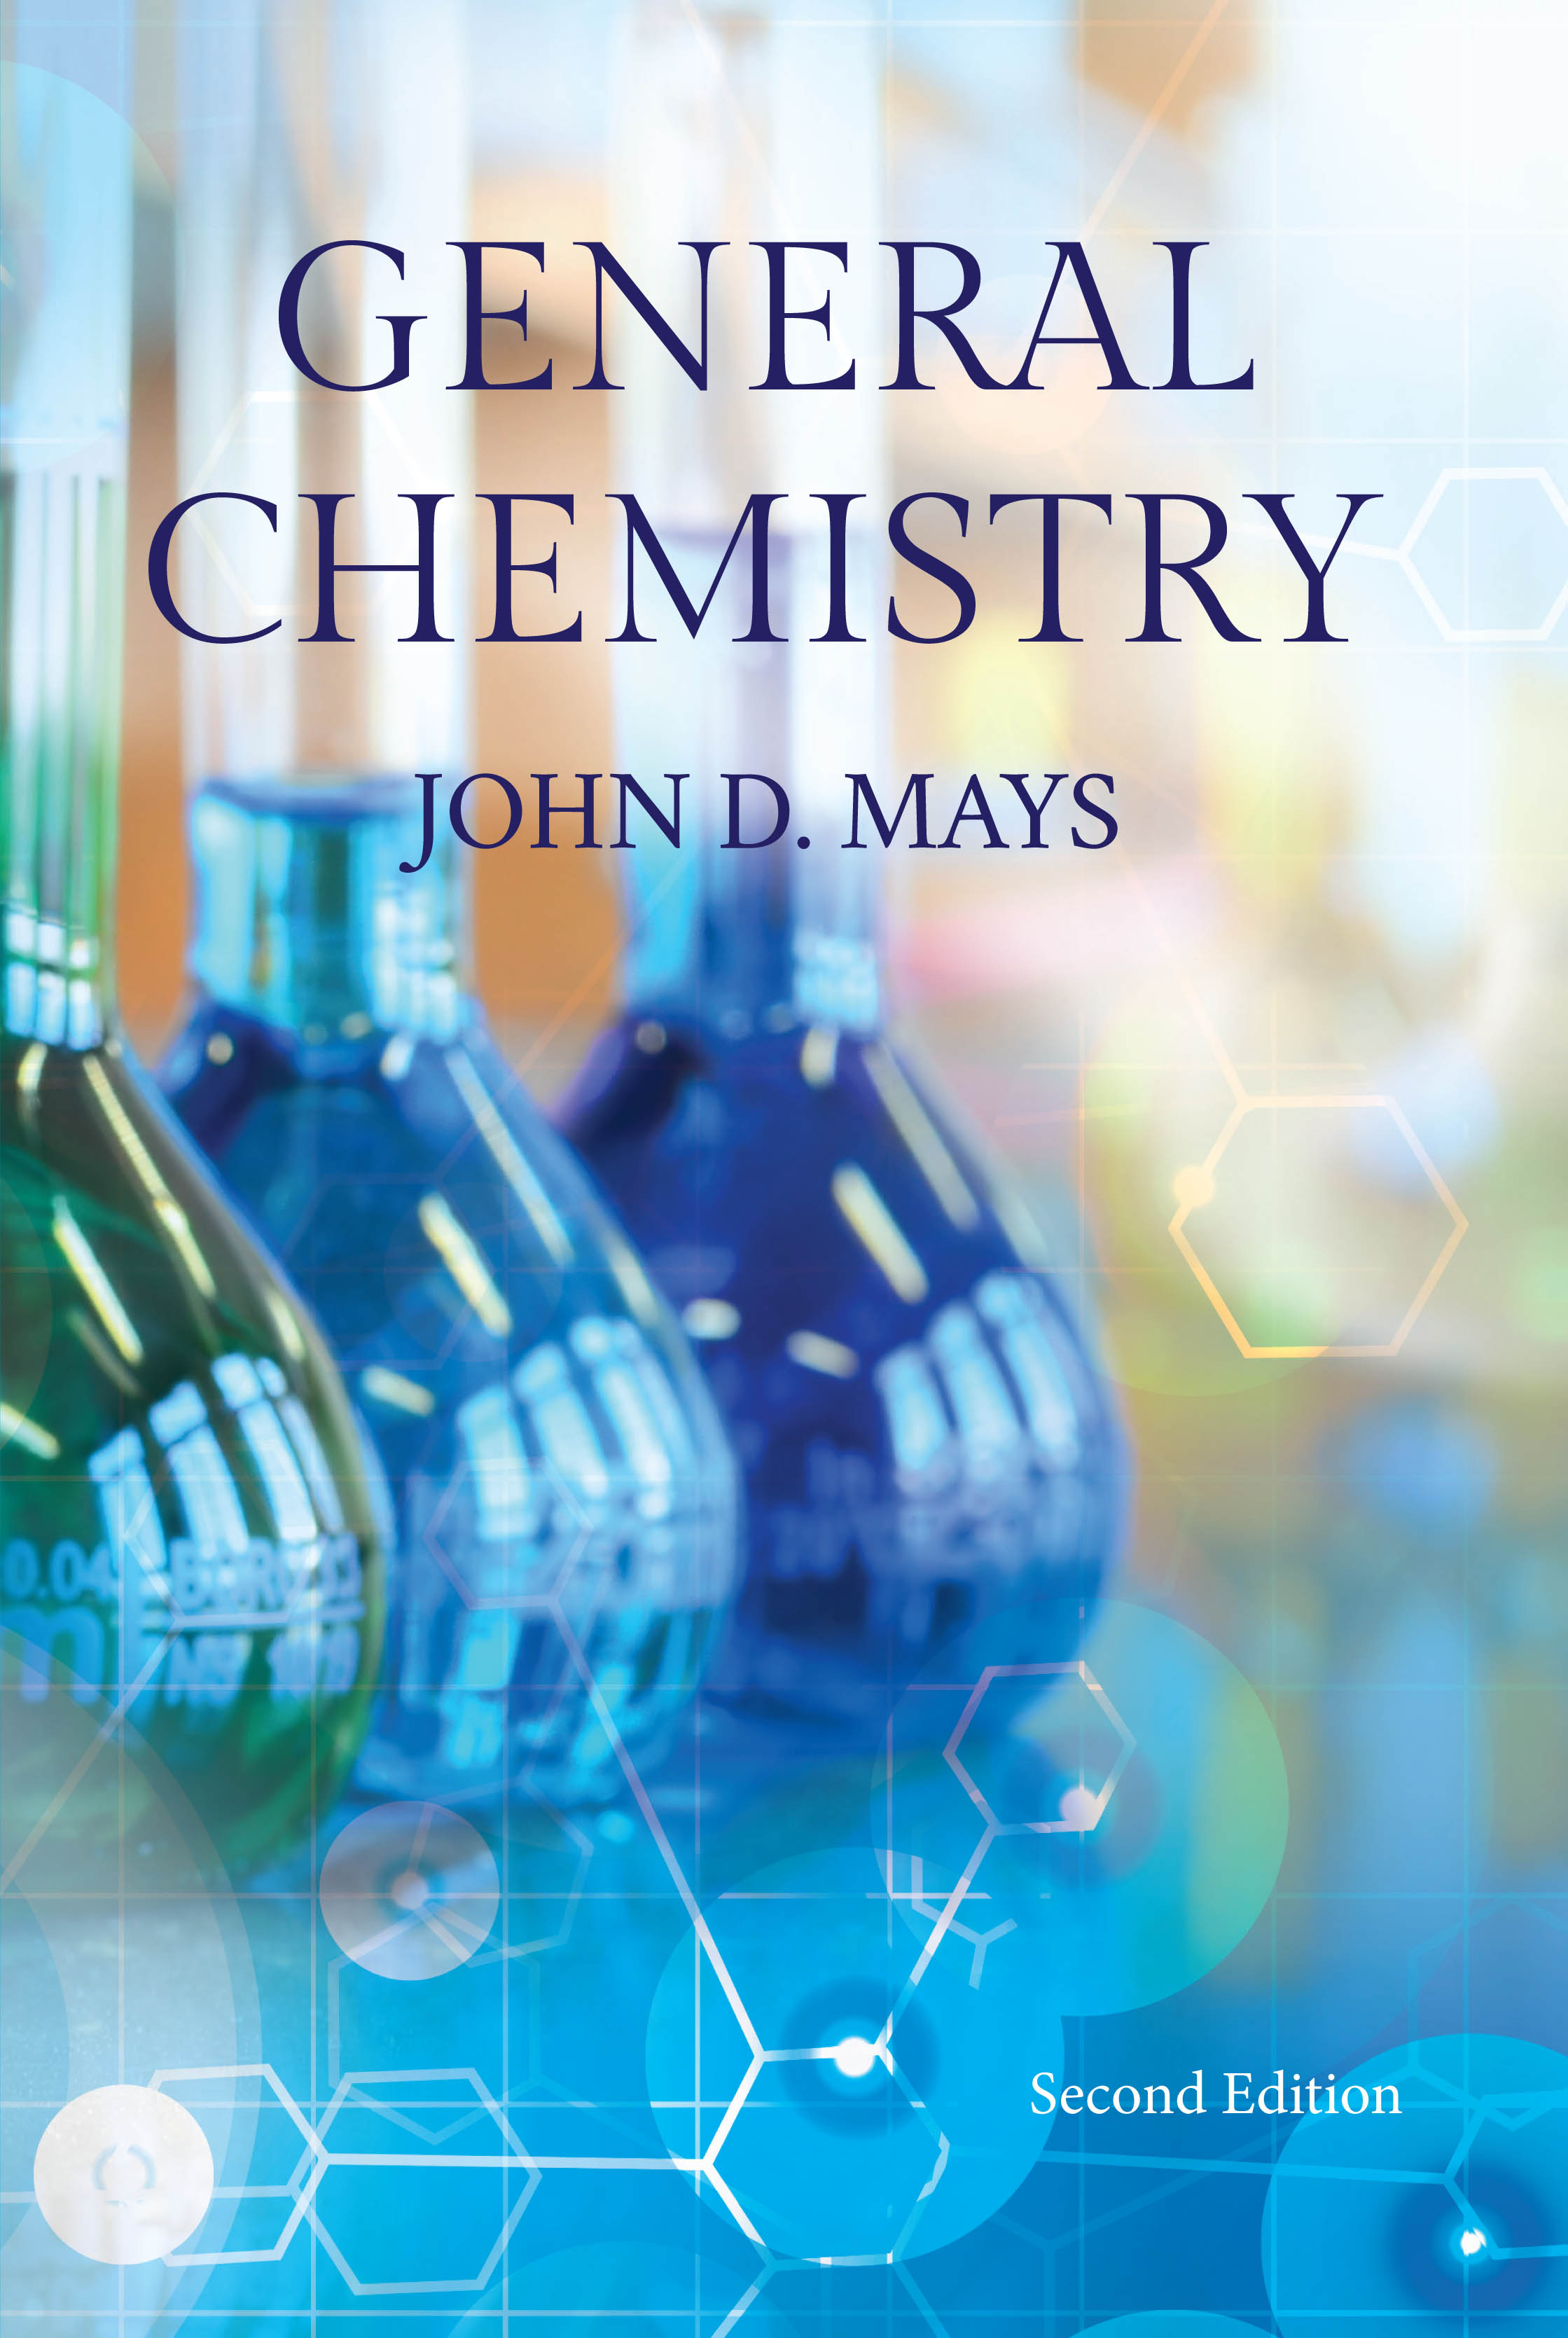 General Chemistry 2nd Edition (5-year license)